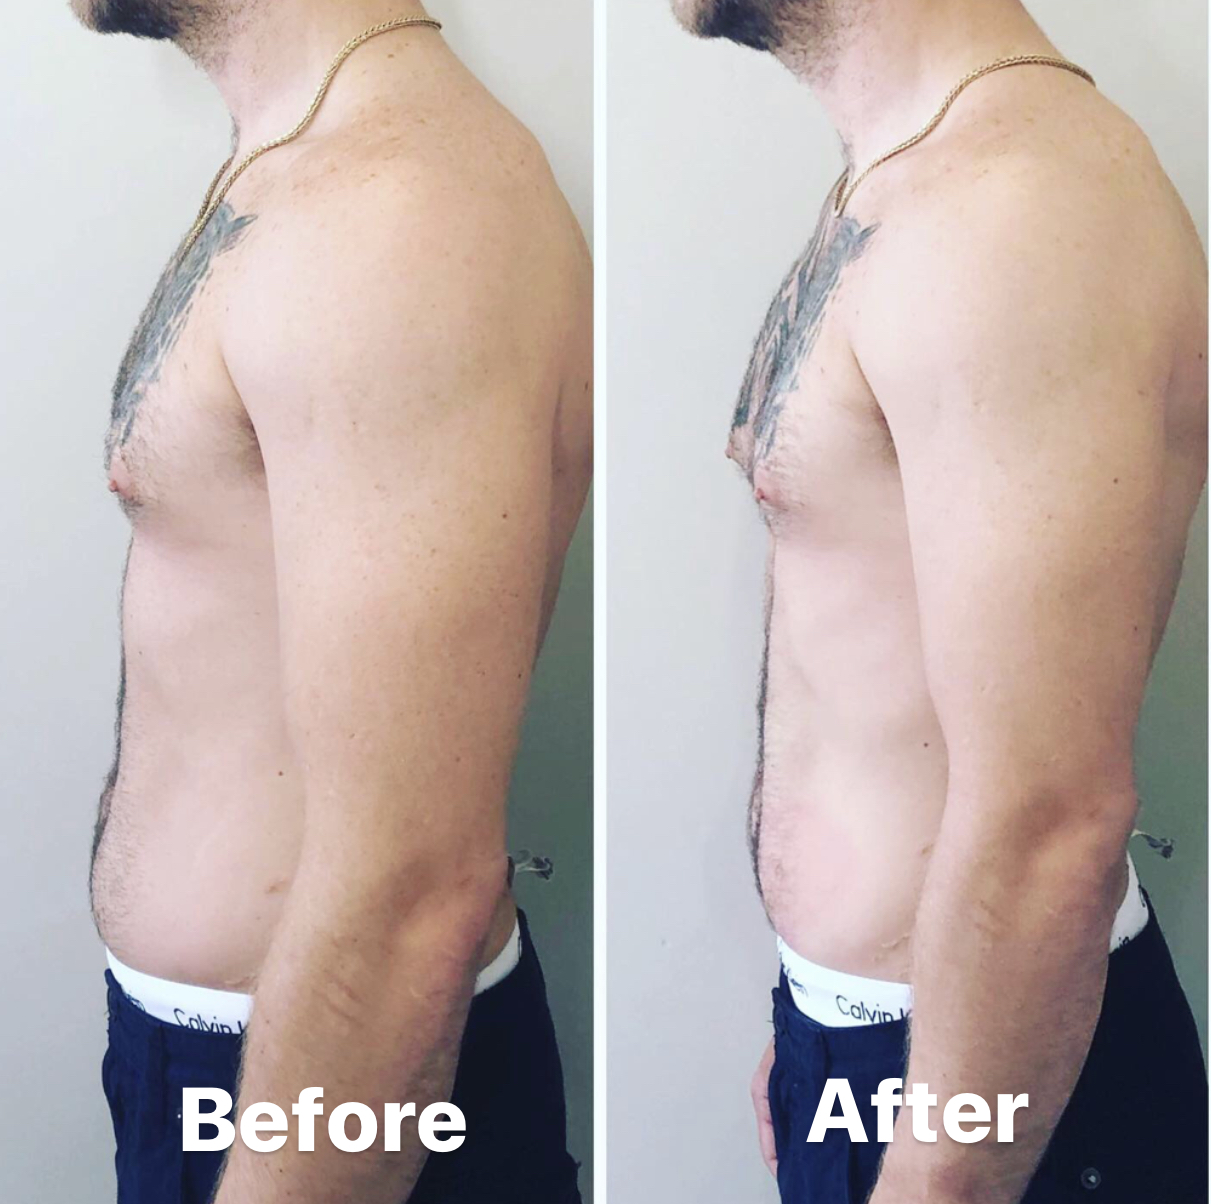 Cryotoning before and After